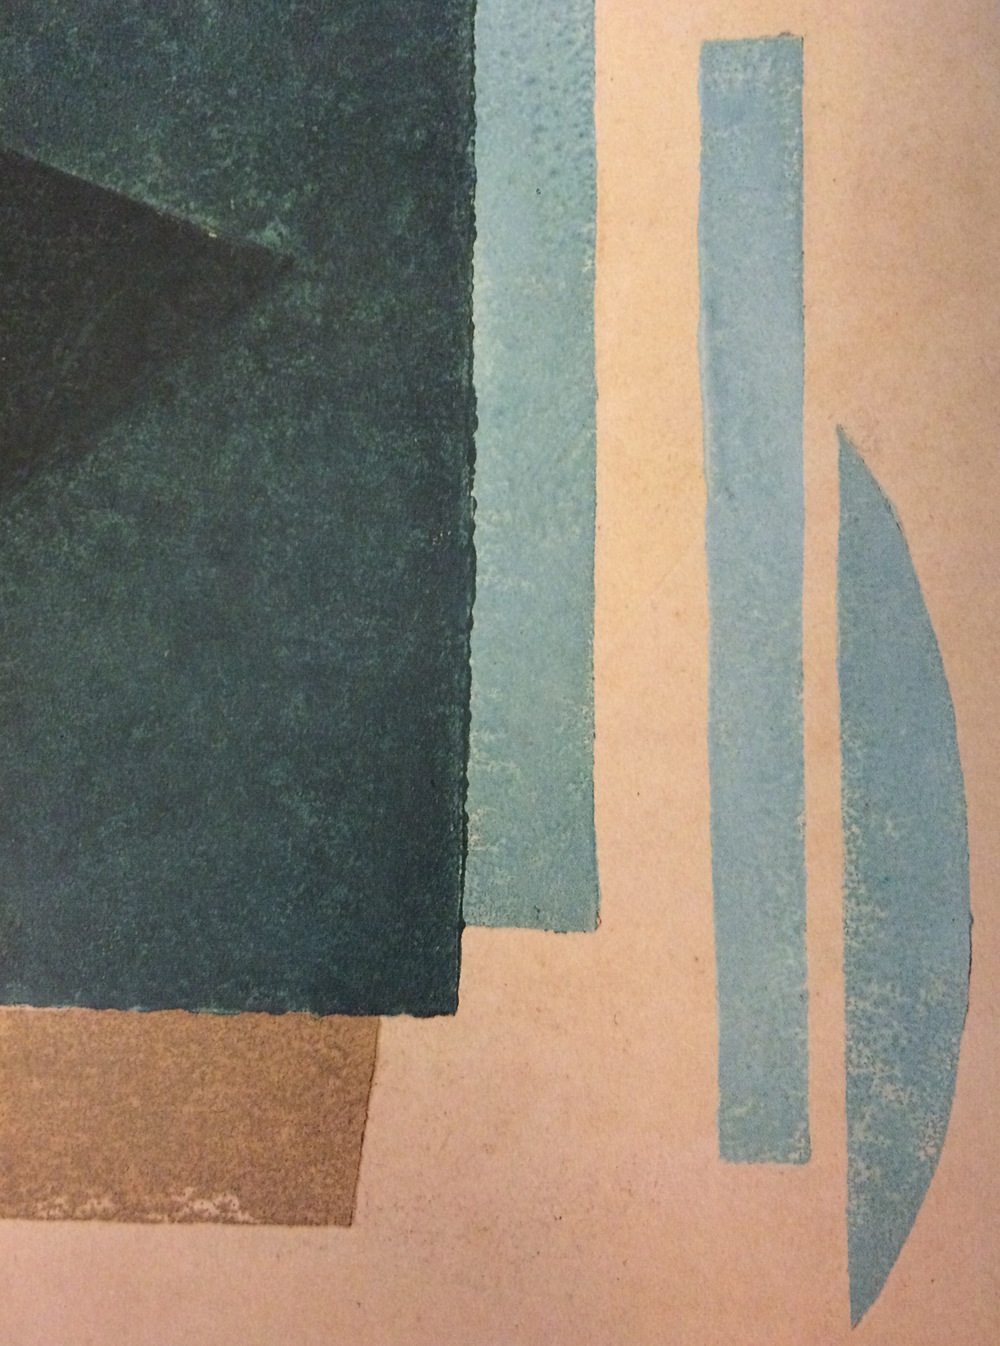 Plate from 6 Prints (detail), 1917, color linocut, 13 3/4 x 10 1/4 inches.